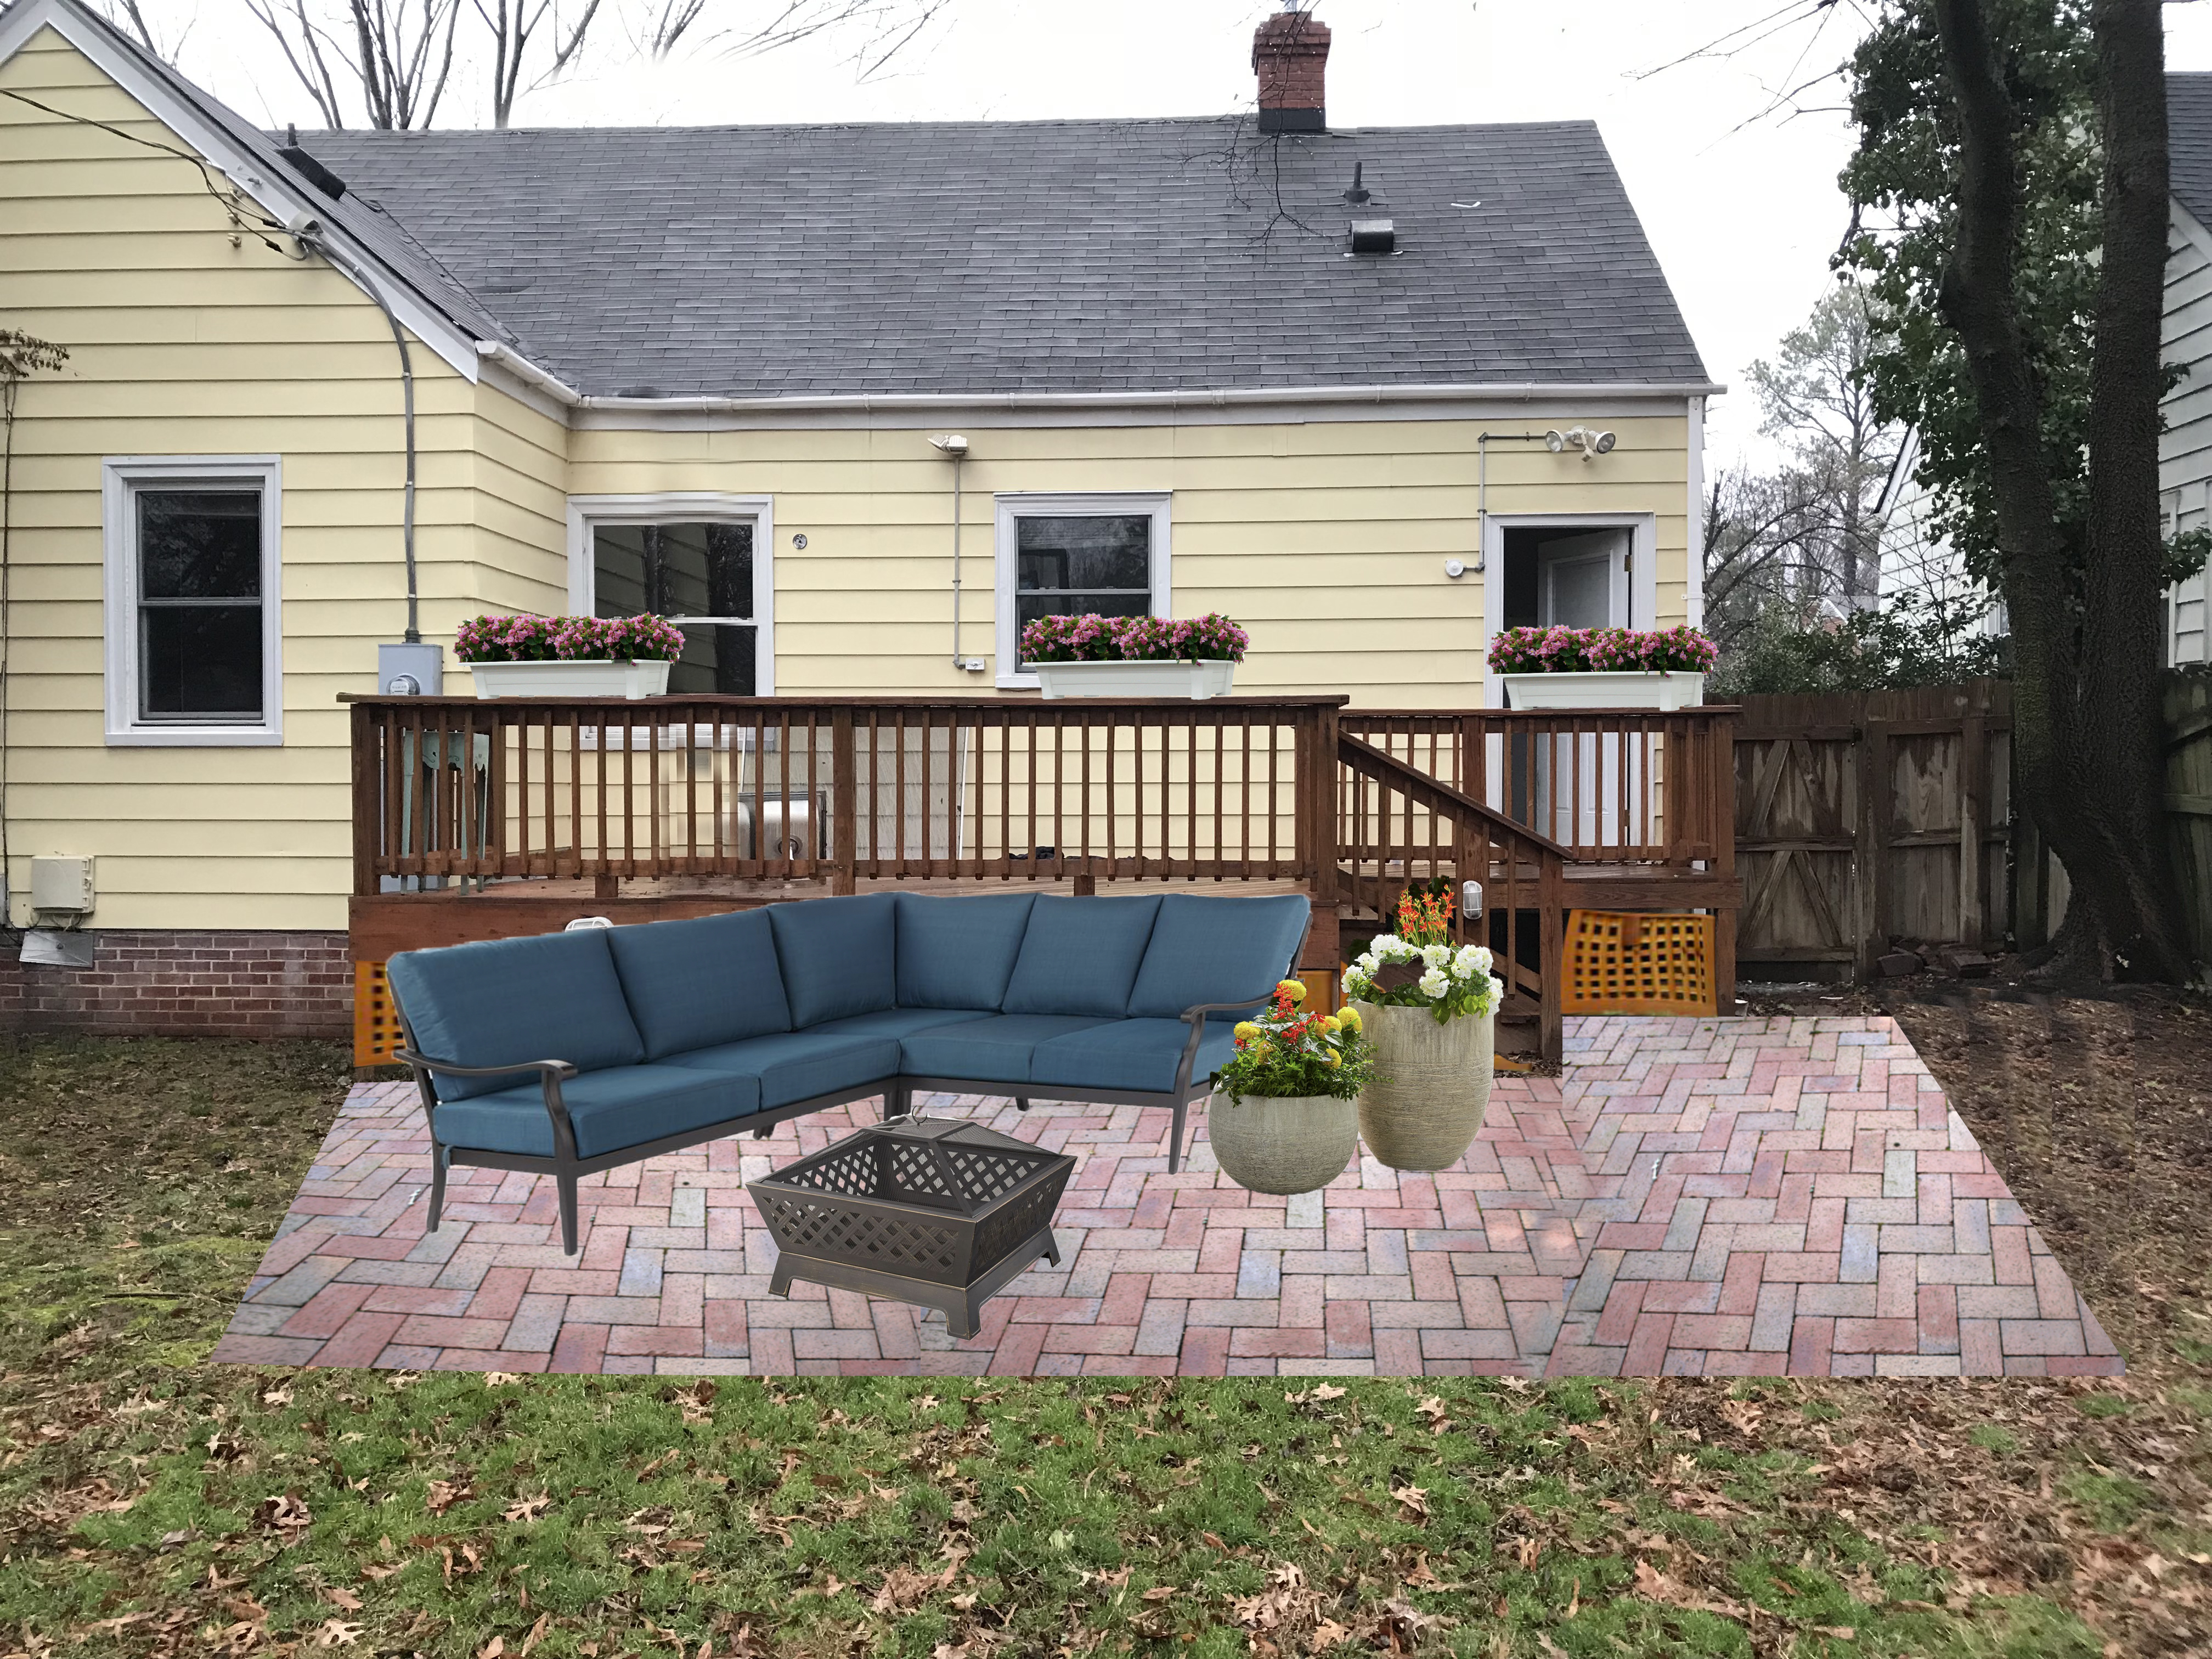 Adding a DIY Paver Patio to the Backyard - Live Free ... on Add On Patio Ideas  id=66921